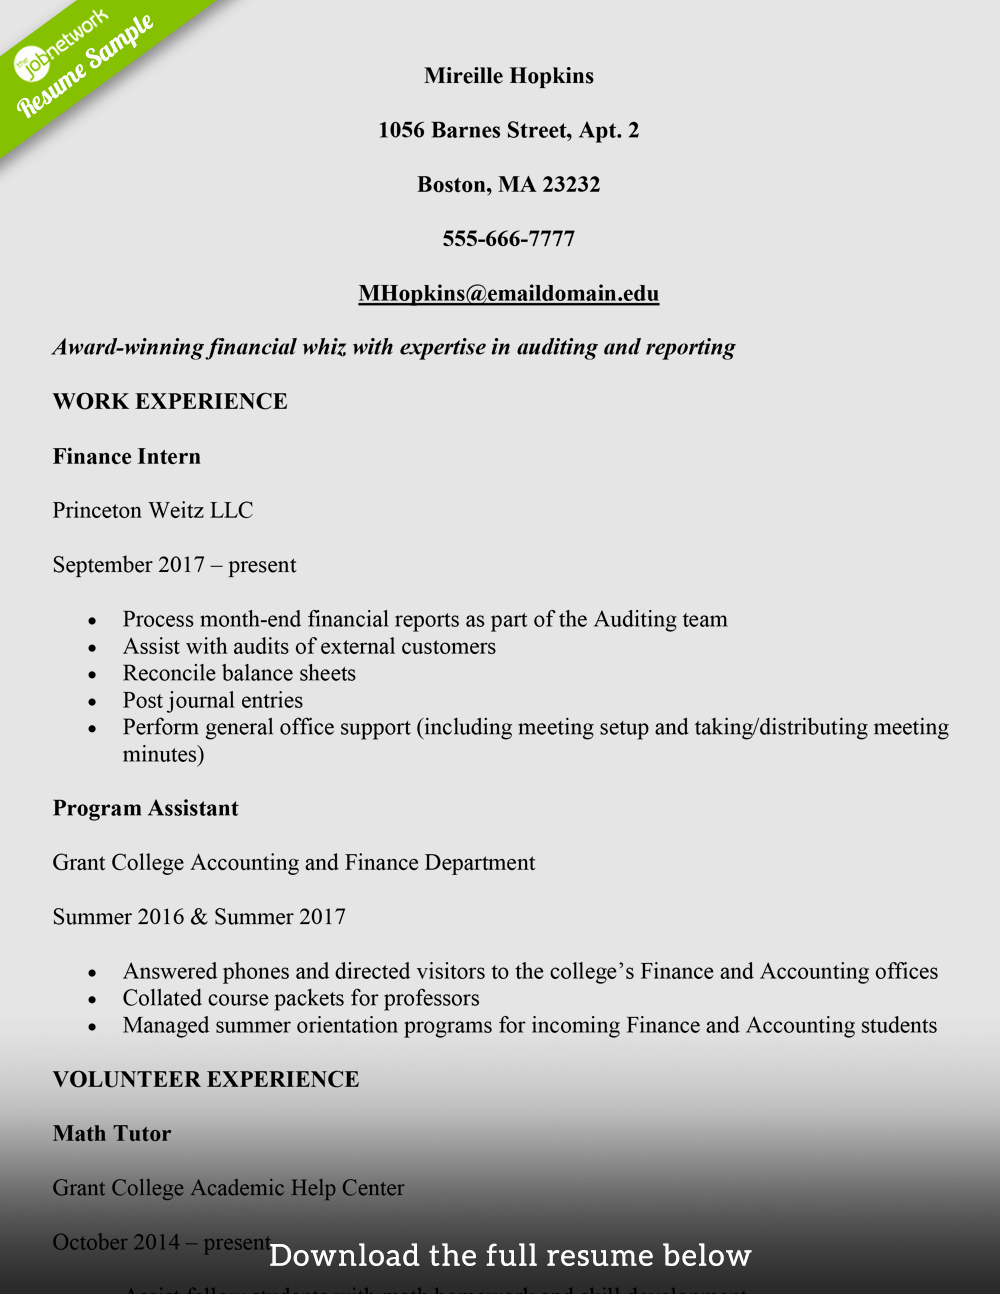 Resume Template College Student Beautiful How to Write A College Student Resume with Examples